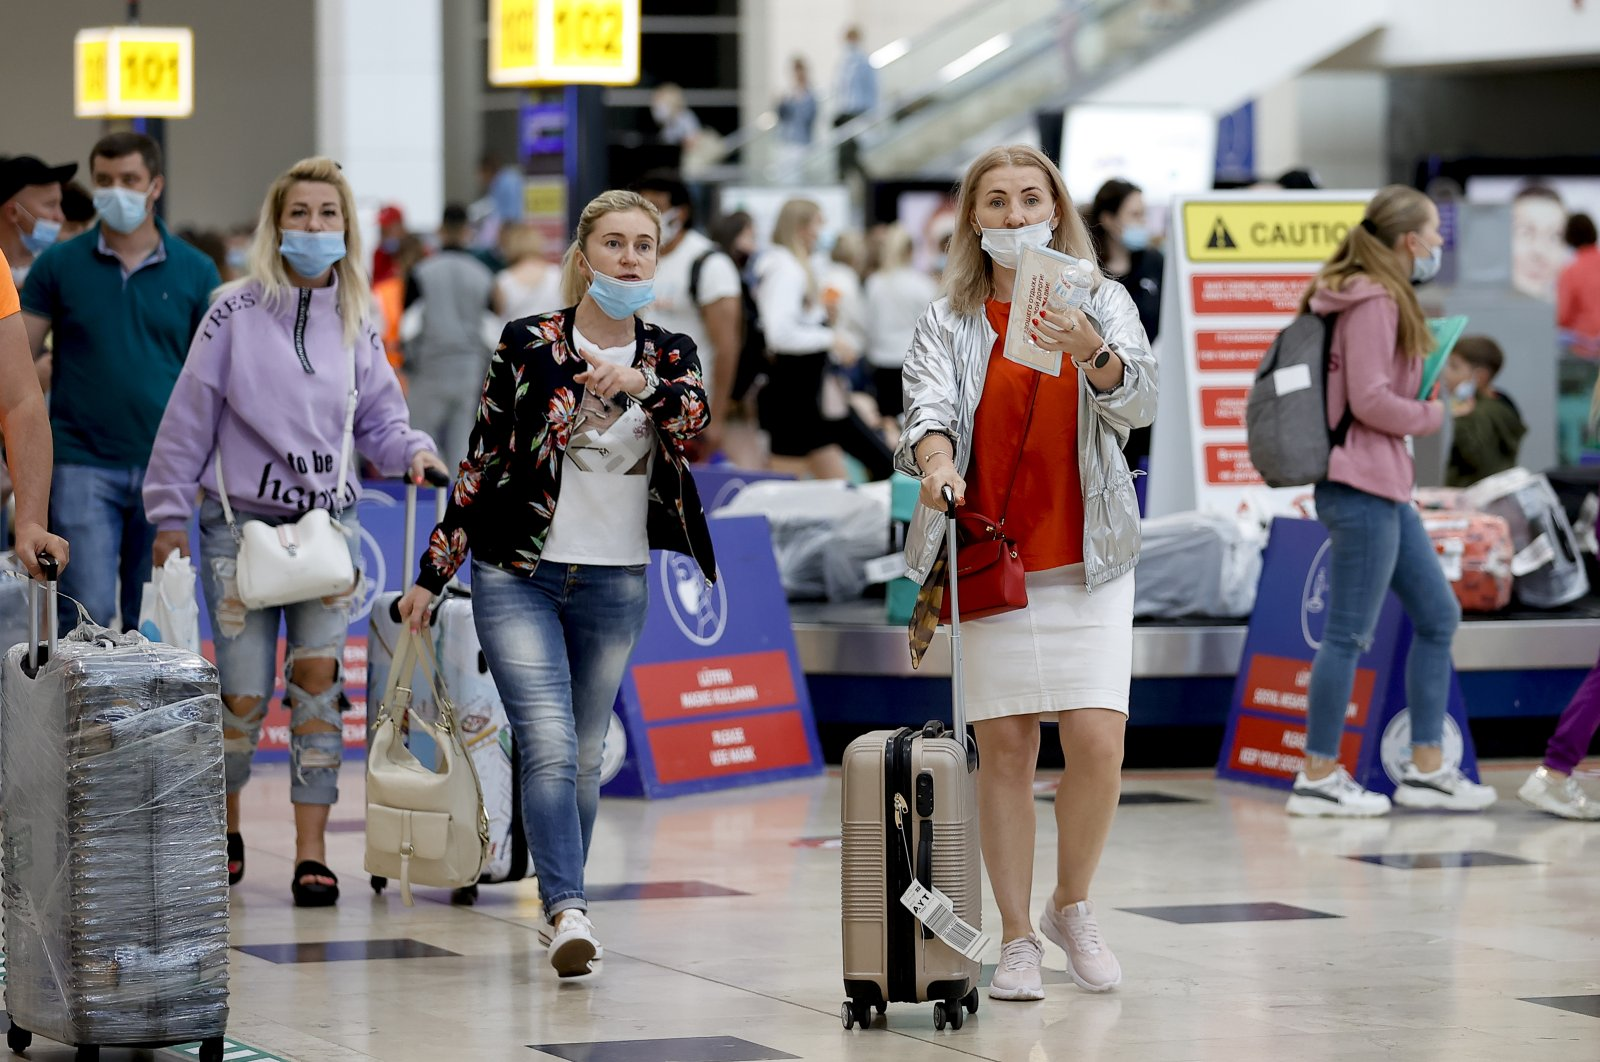 Russian tourists walk at an airport in the southern province of Antalya, Turkey, June 22, 2021. (AA Photo)